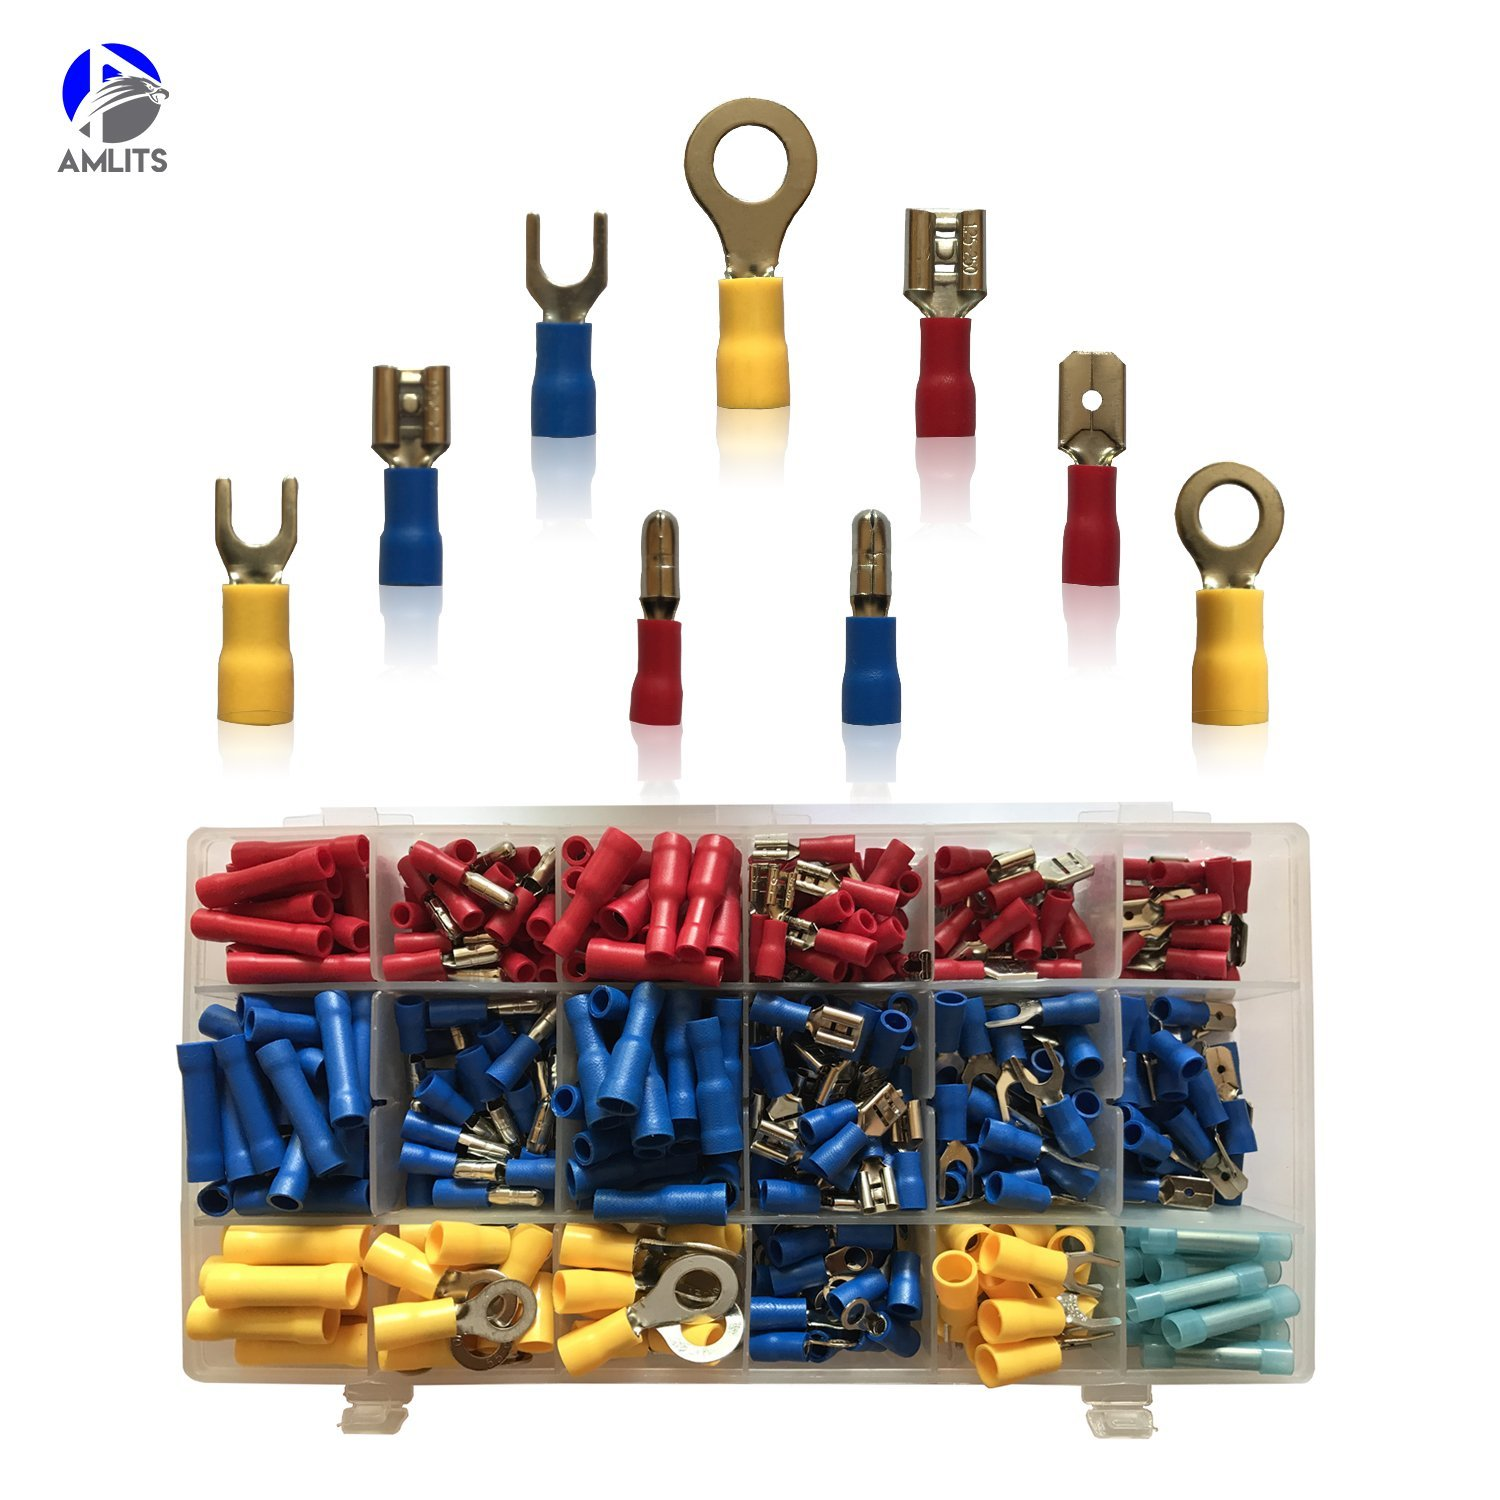 260 PCS Insulated Wire Connector Assortment Electrical - Butt, Ring, Lug, Fork, Spade - Crimp Marine Automotive Cable Terminal